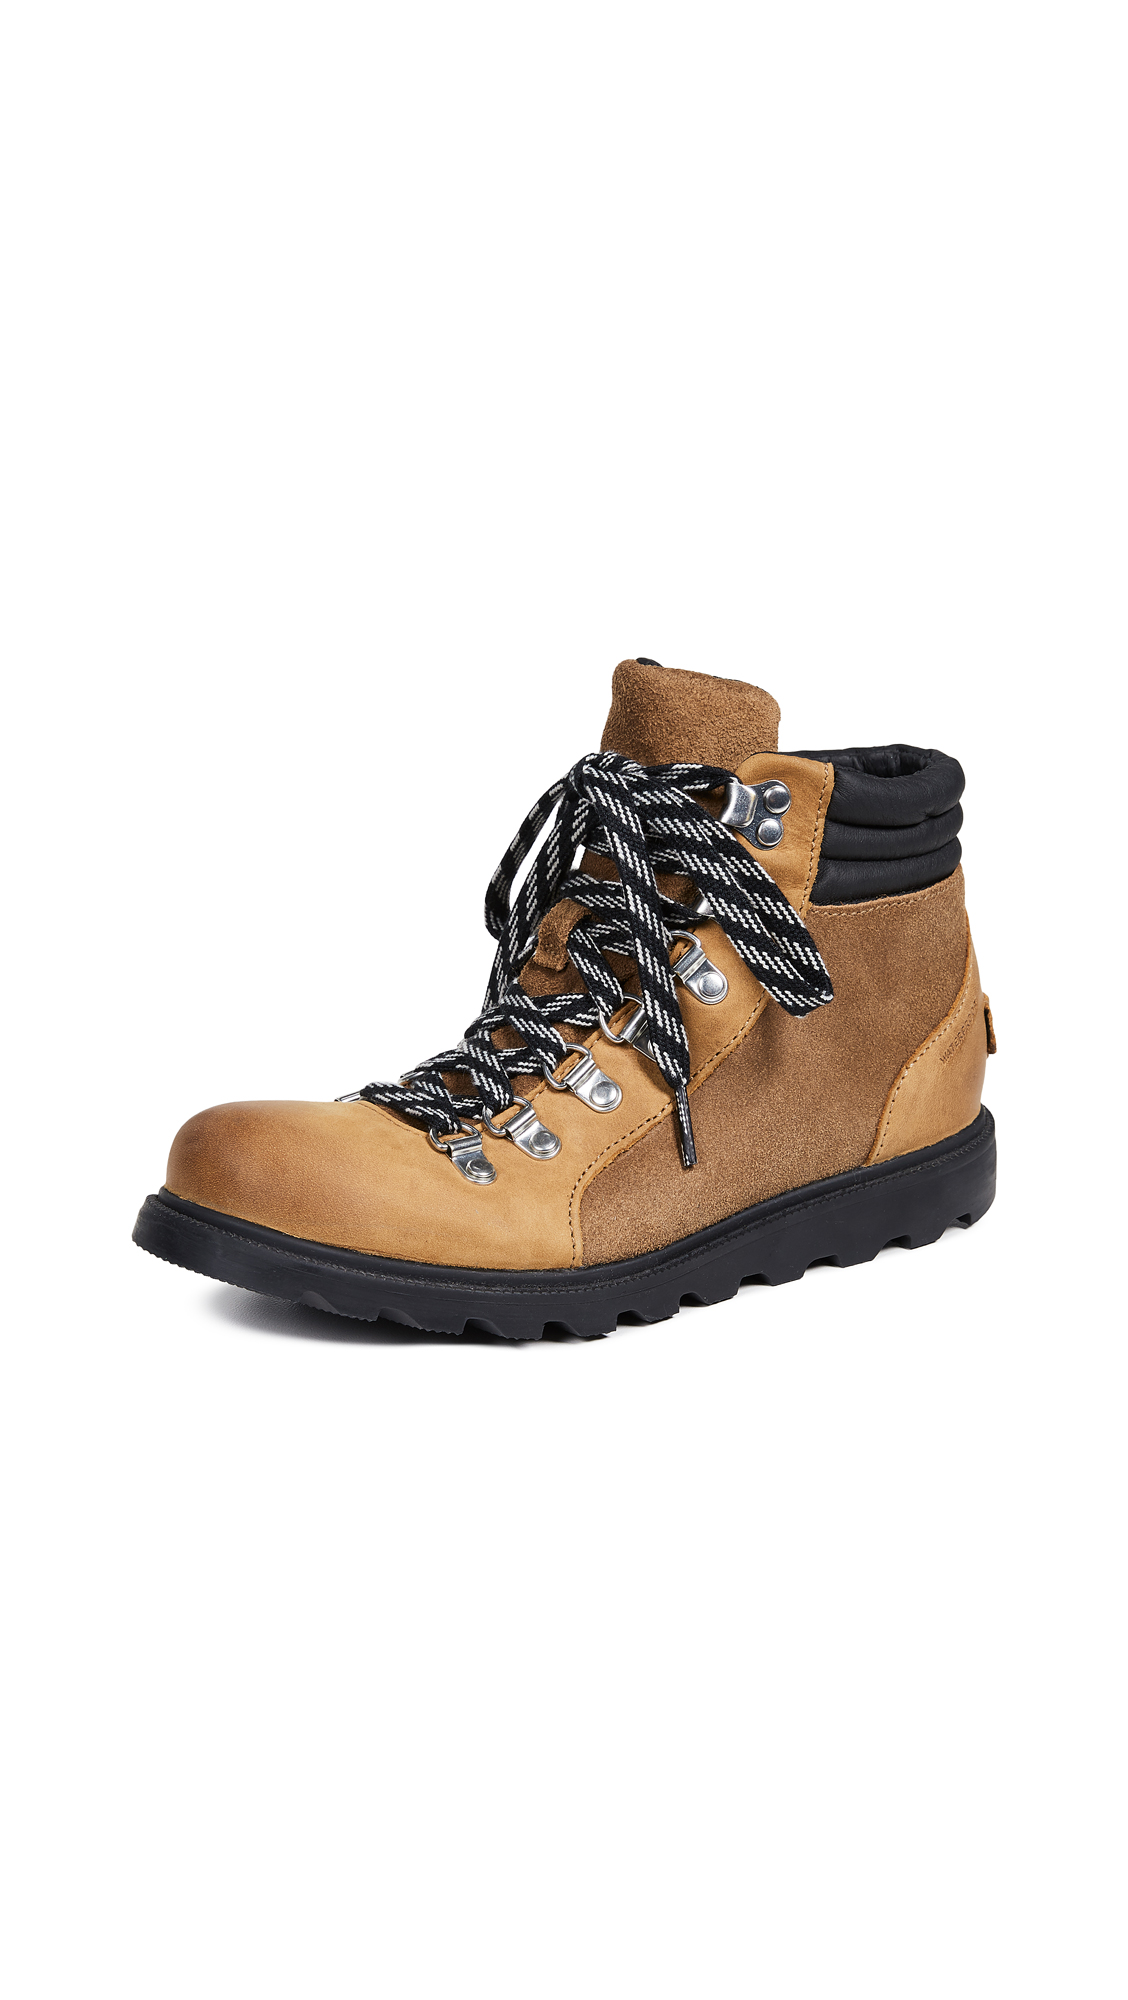 Sorel Ainsley Conquest Boots - Camel Brown/Black